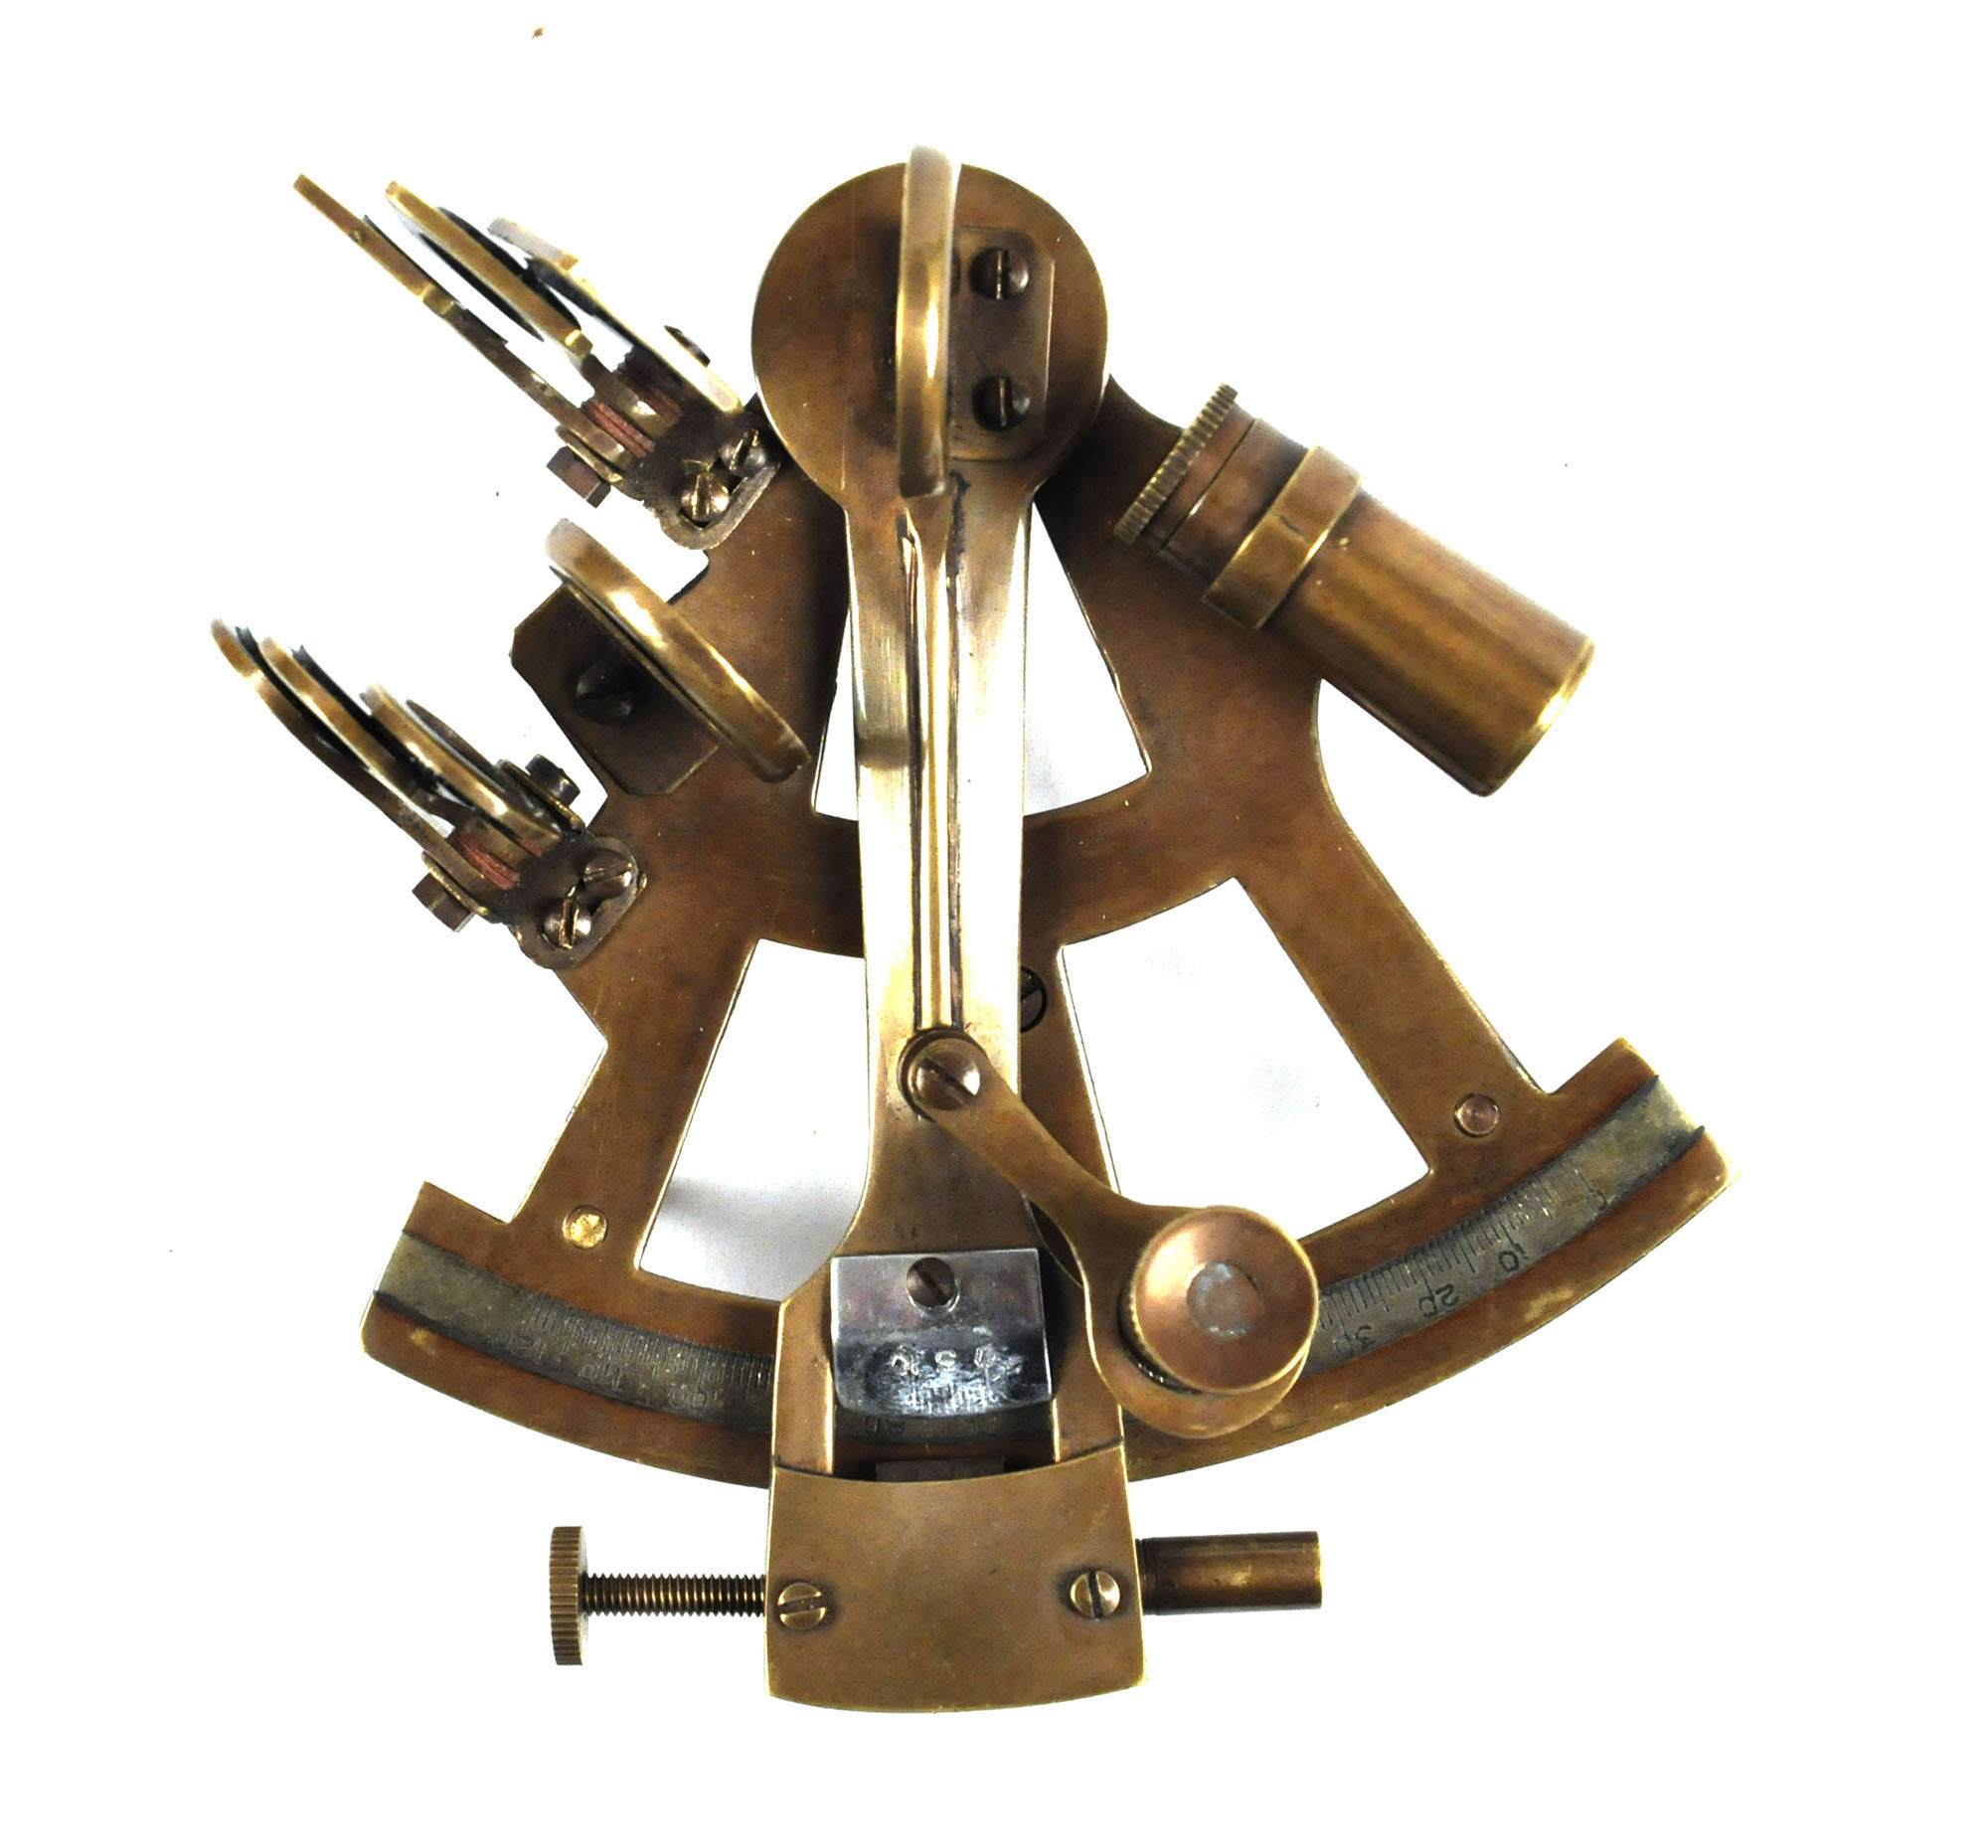 Antiqued Sextant with Wooden Presentation Box | Pink Cat Shop